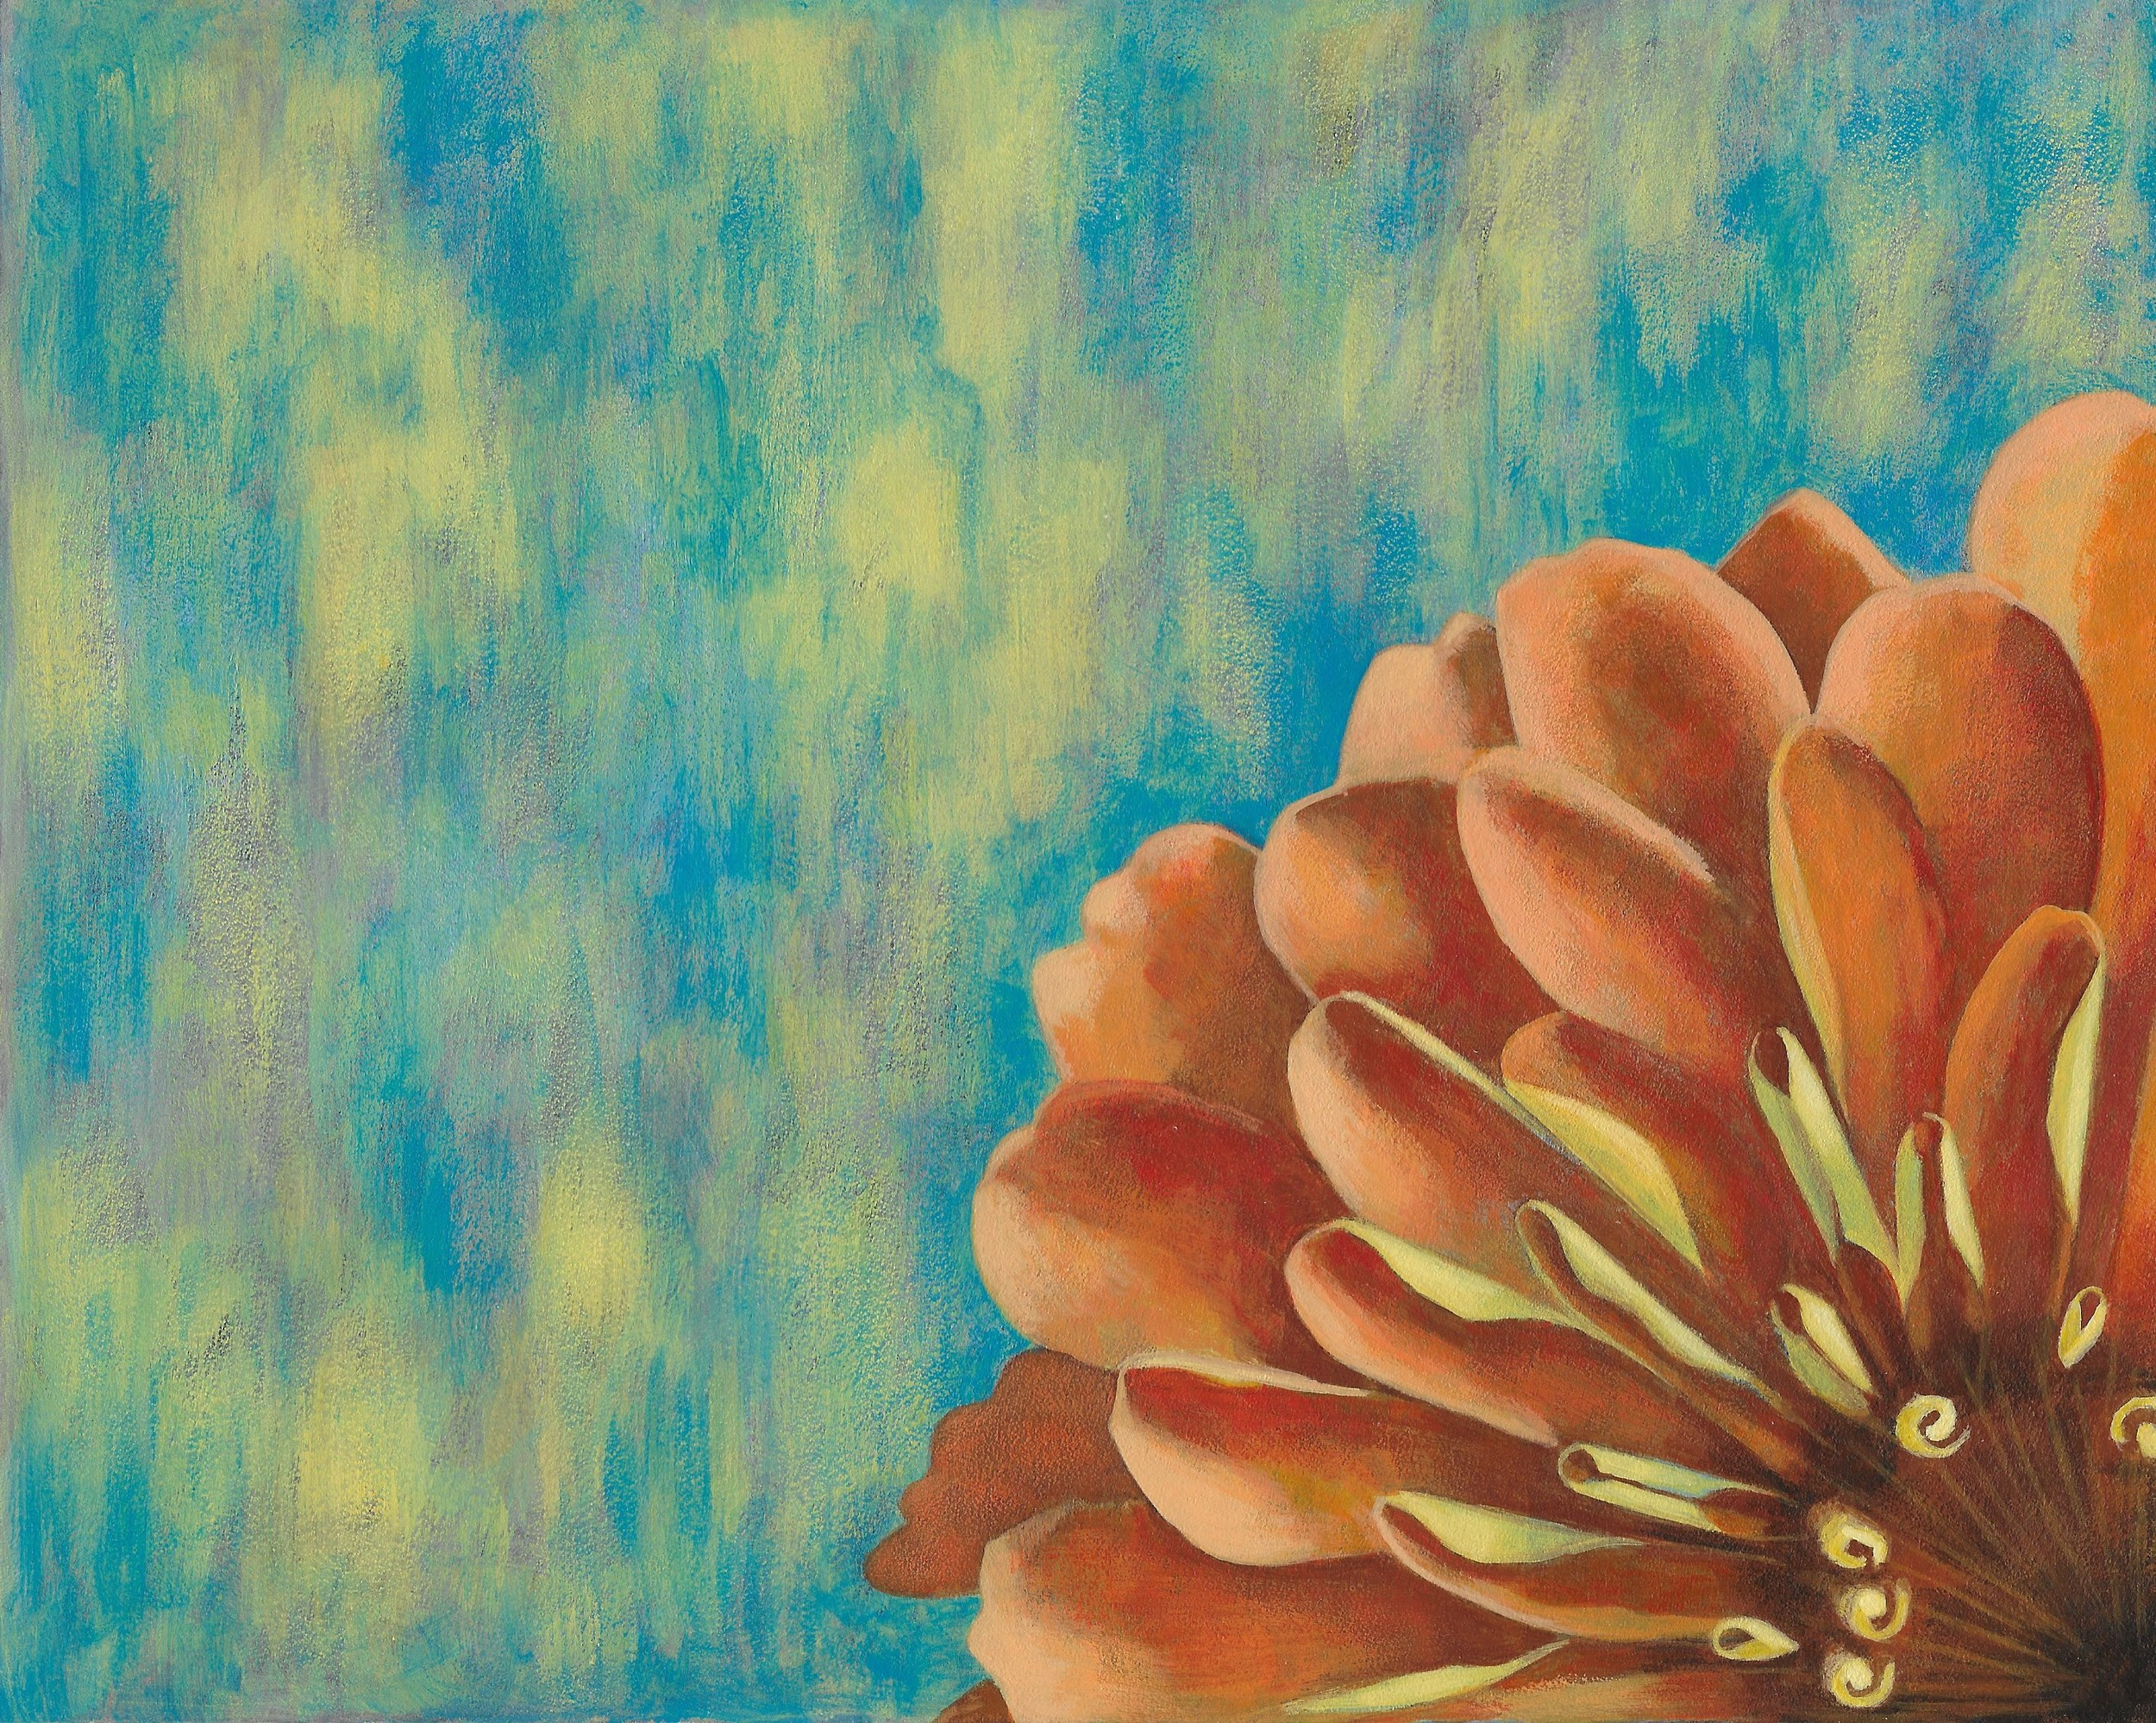 Zinnia  Acrylic on Panel  8 by 10 inches